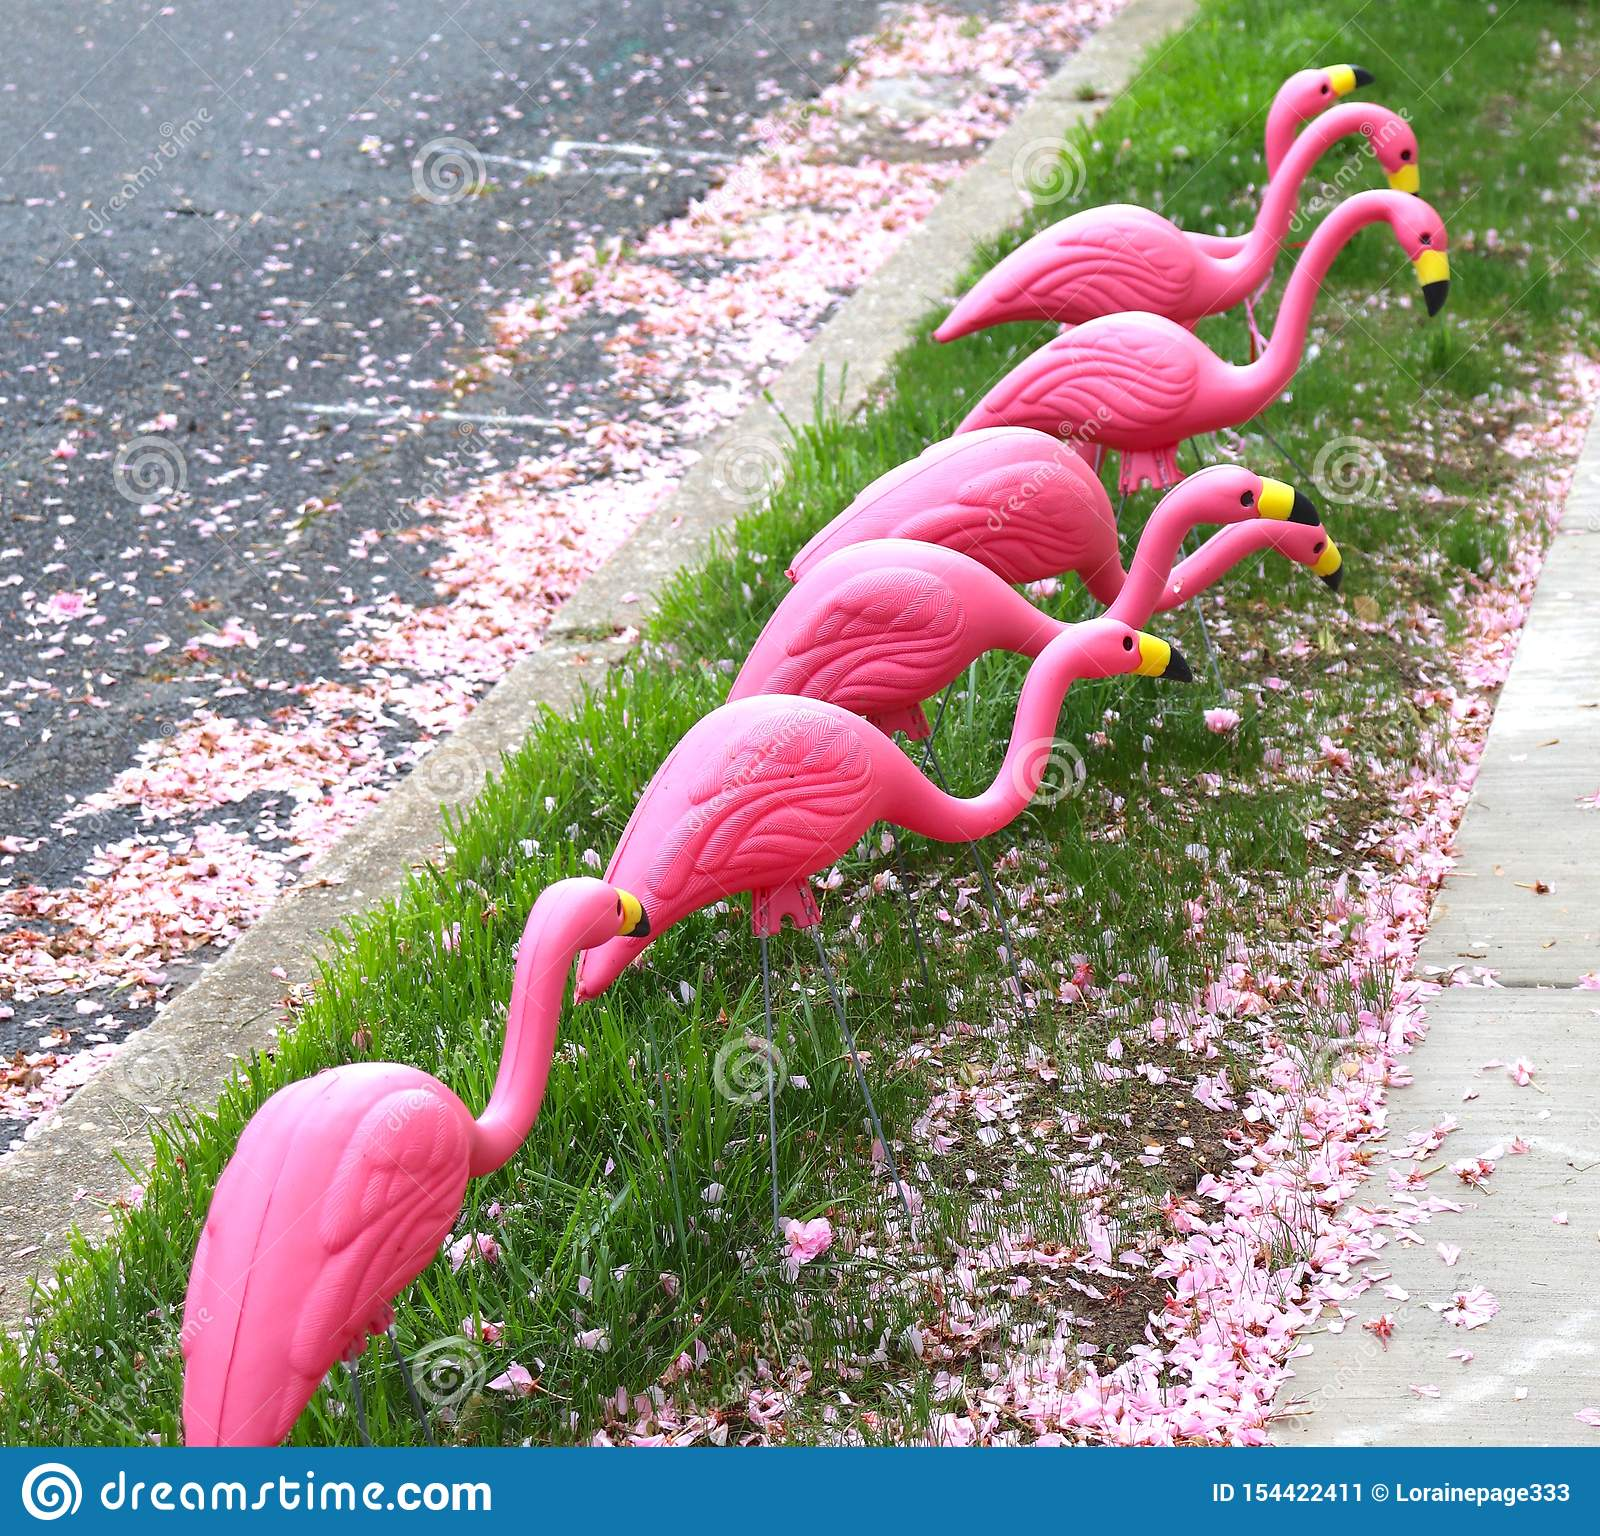 Flamingos Pink and Plastic Looking For Food at the Curb